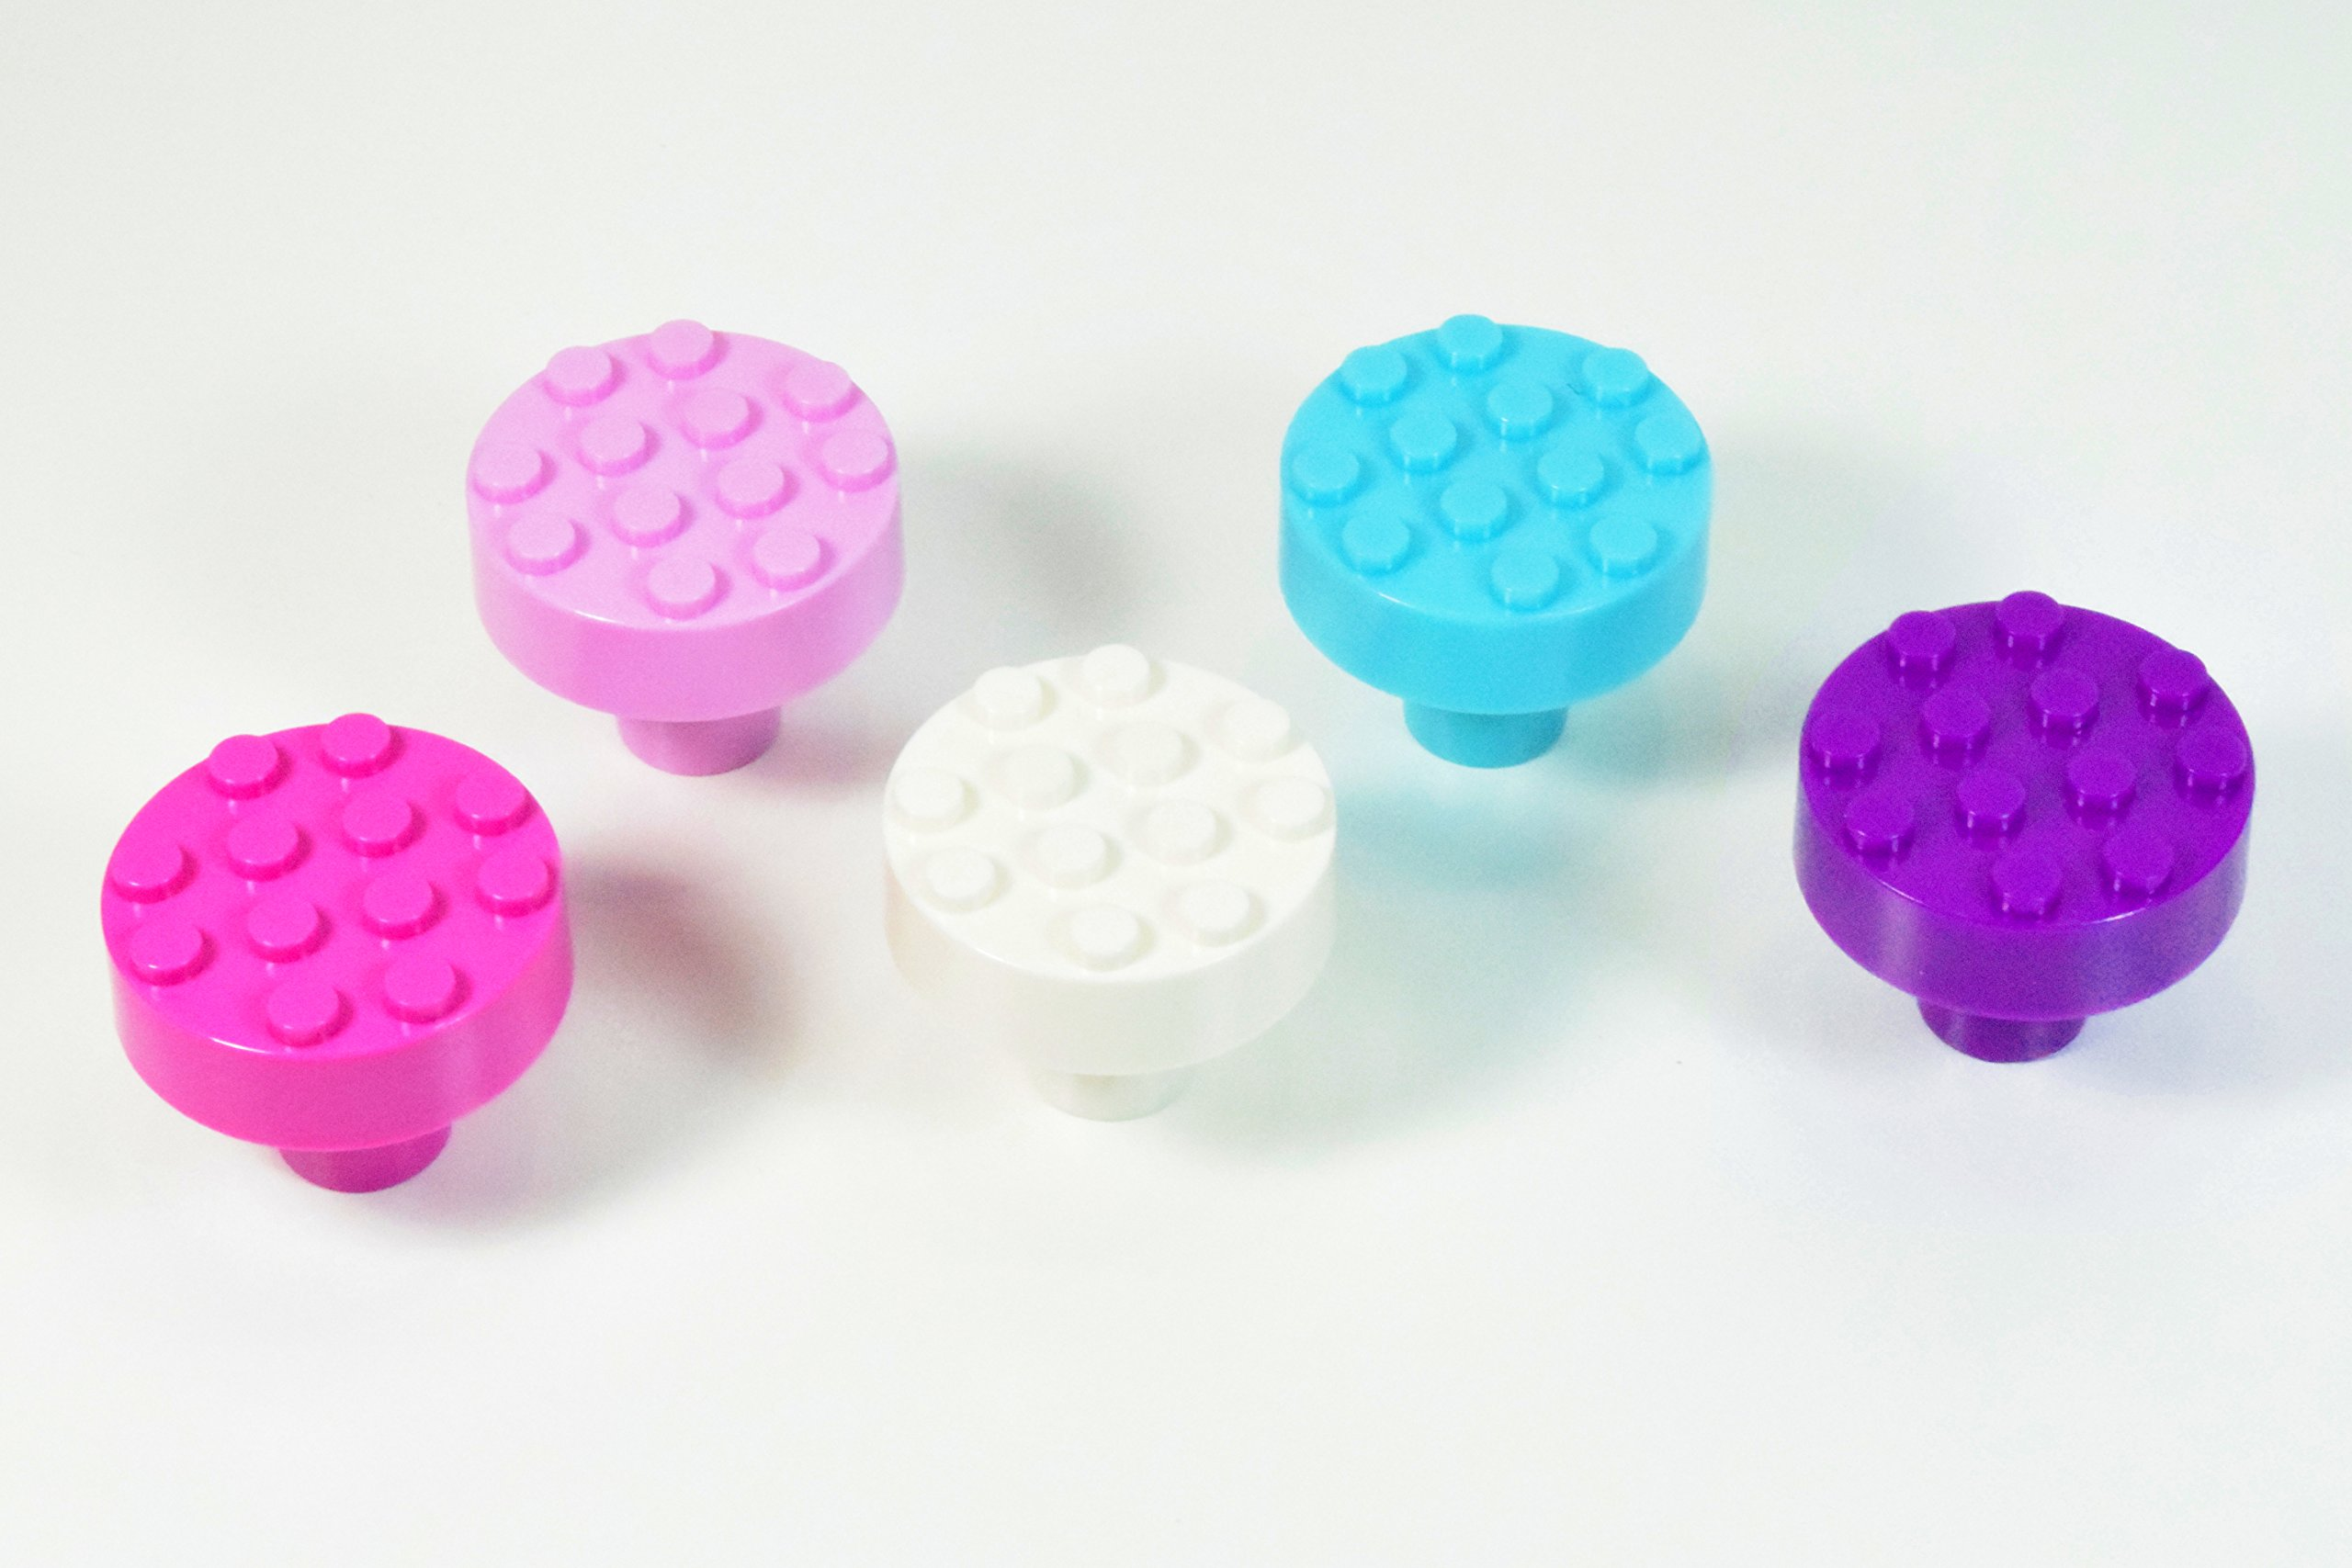 Set of 5 Build-On Brick Knobs (Gem Assorted - Hot Pink, Pink, Purple, White, Turquoise)